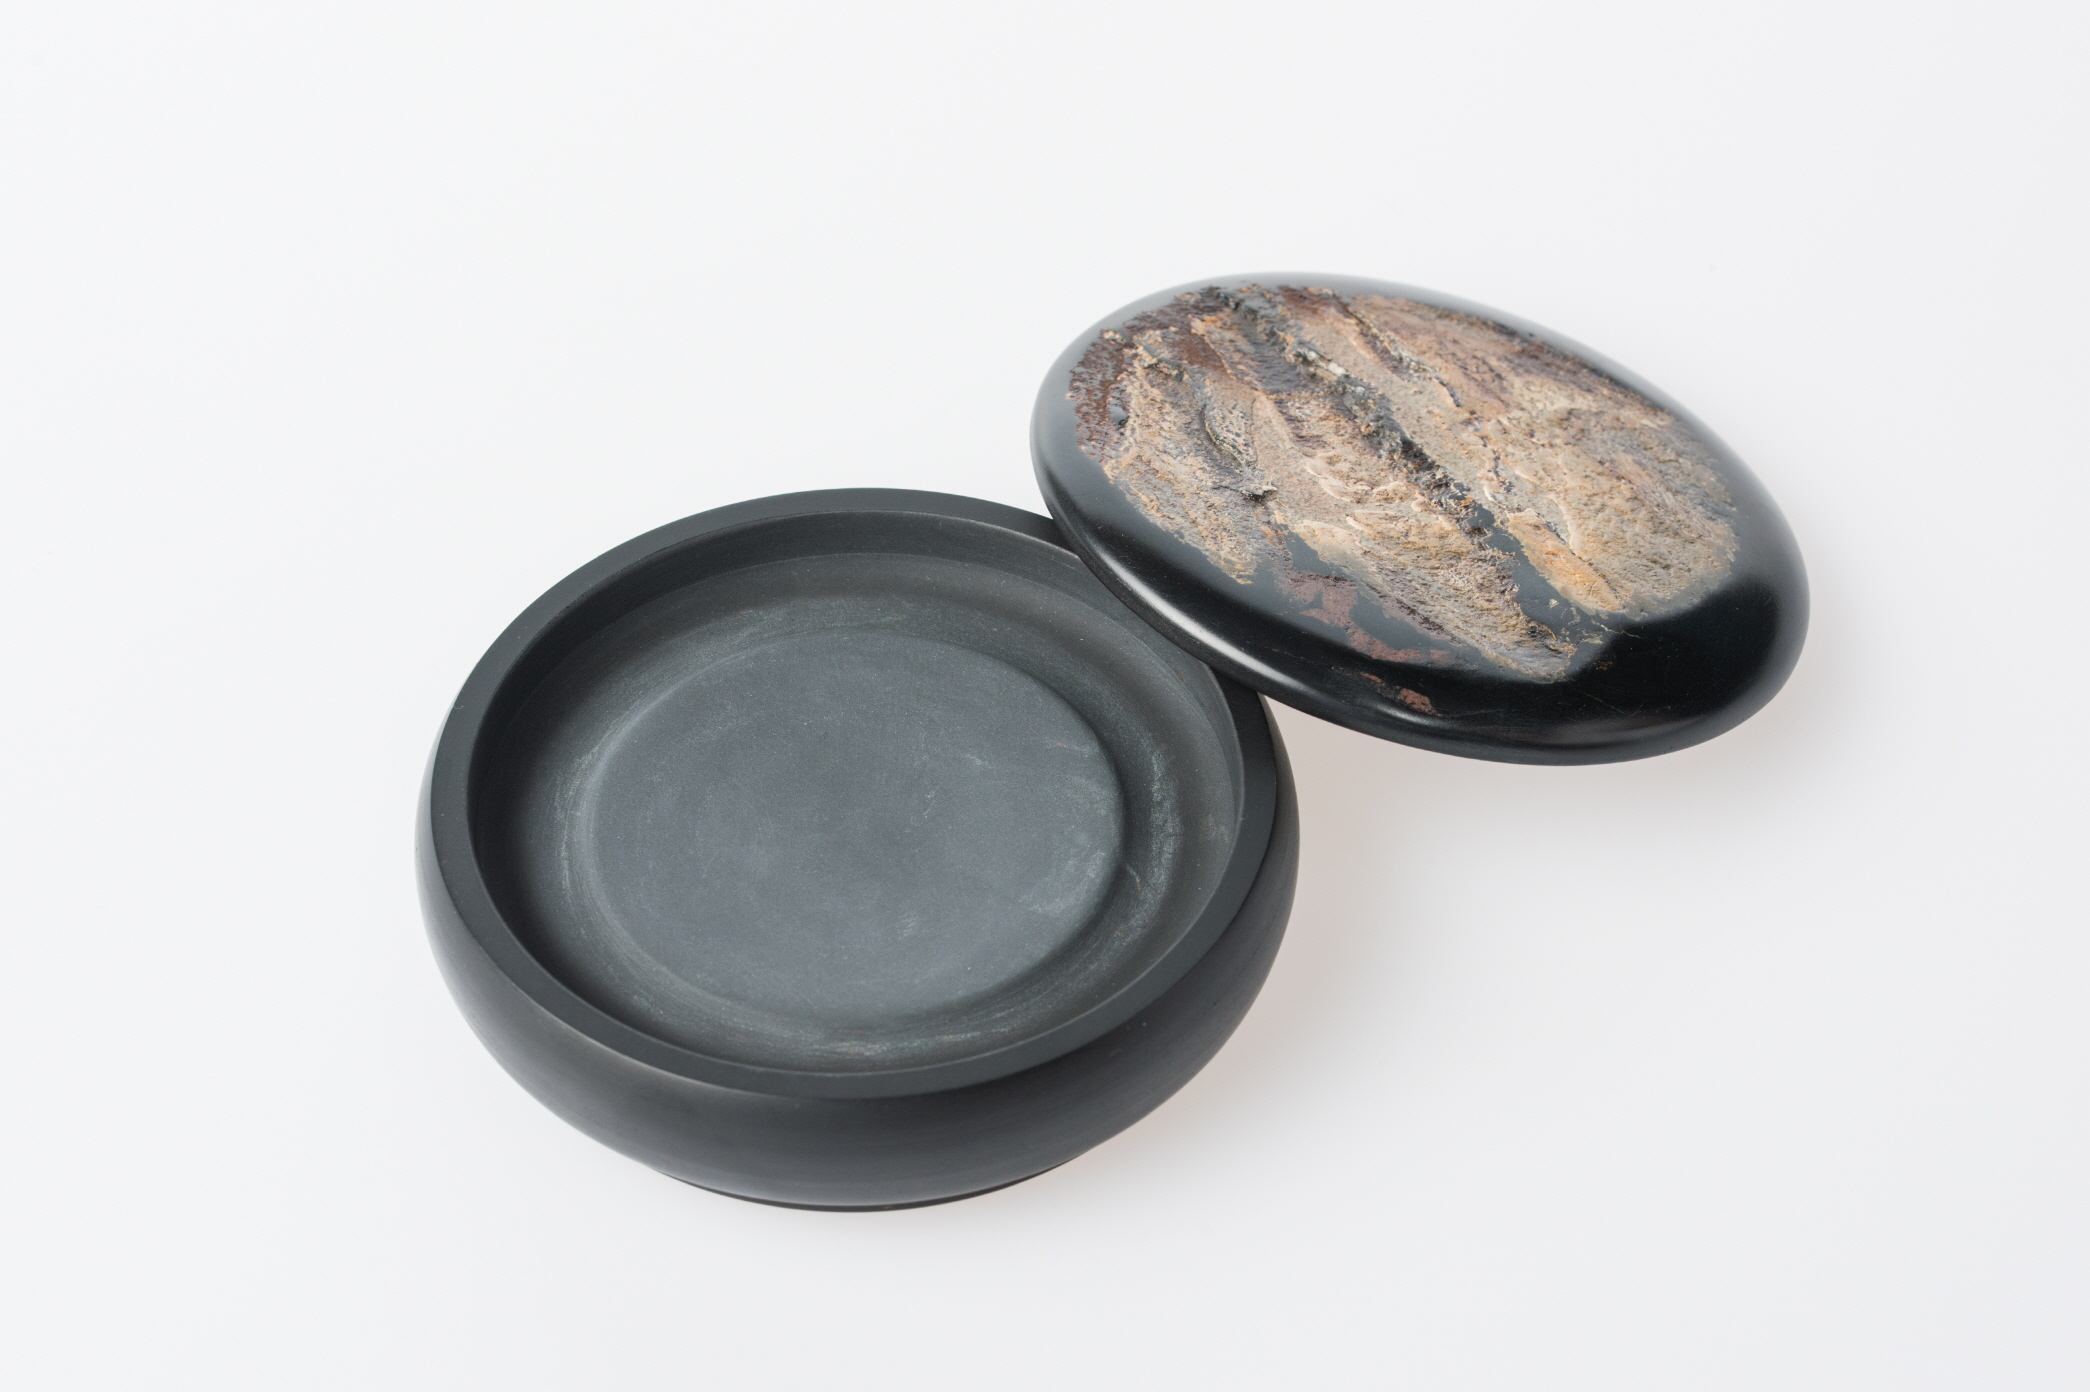 Round Inkstone and Letterweight with Natural Stone Patterns